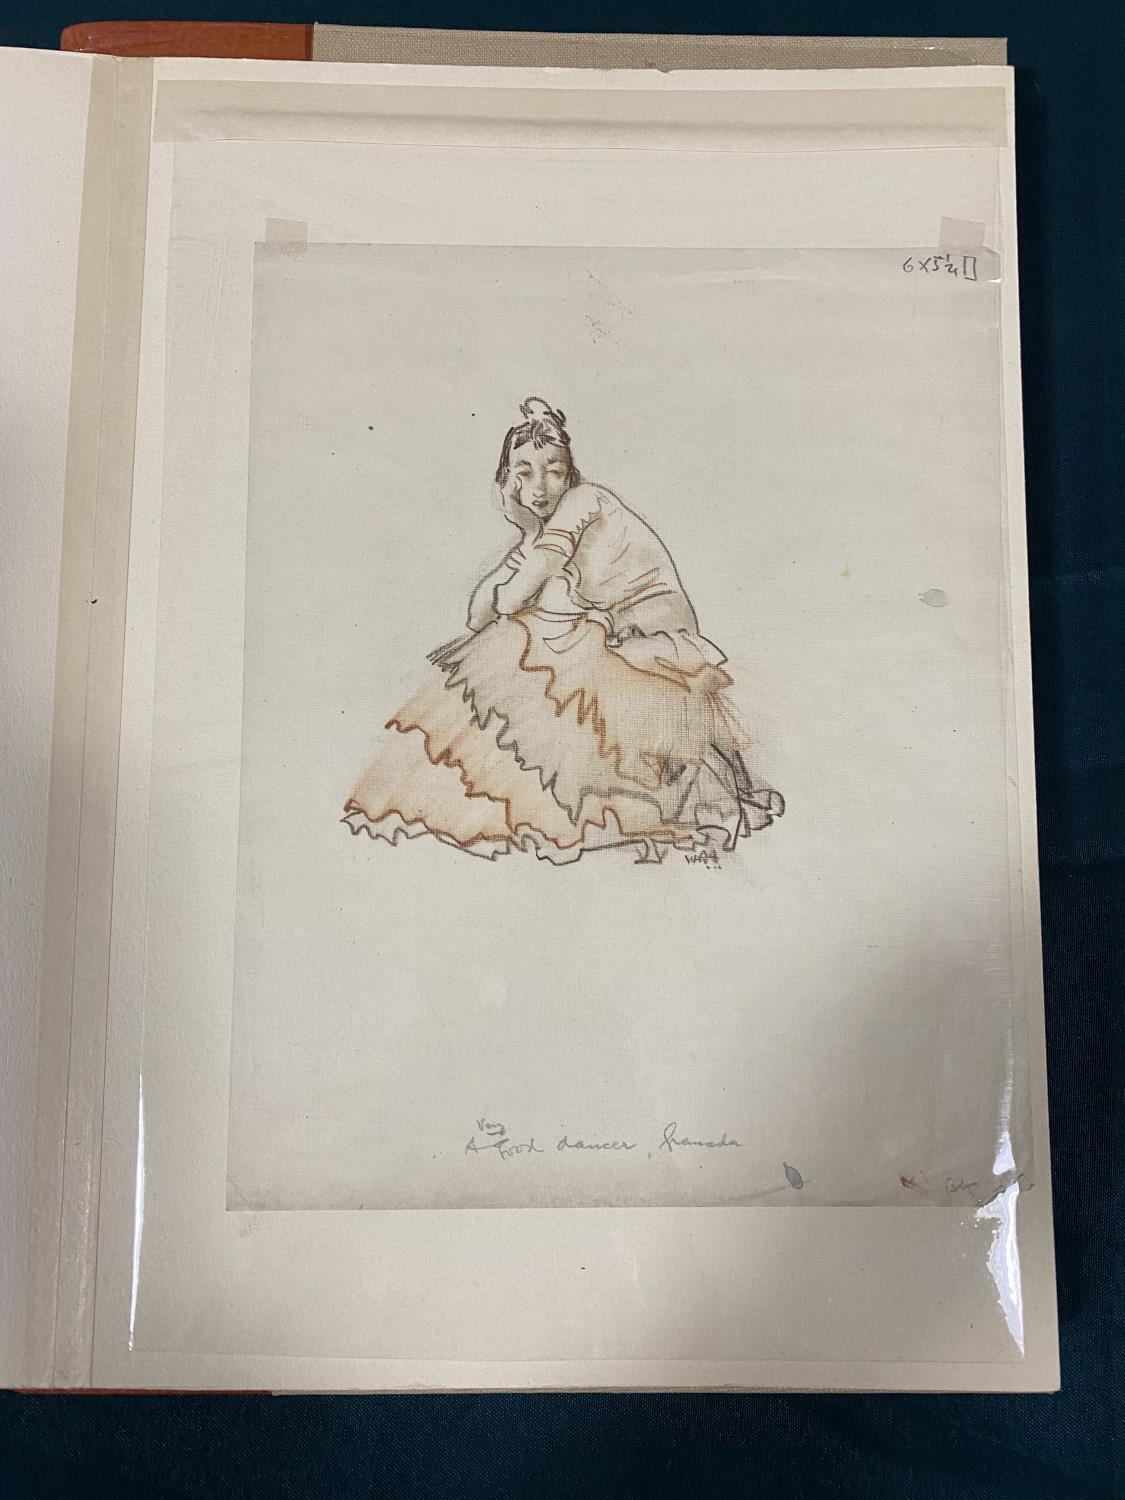 Flint, William Russell. Drawings, number 25 of 125 copies, signed by the artist, with an ORIGINAL